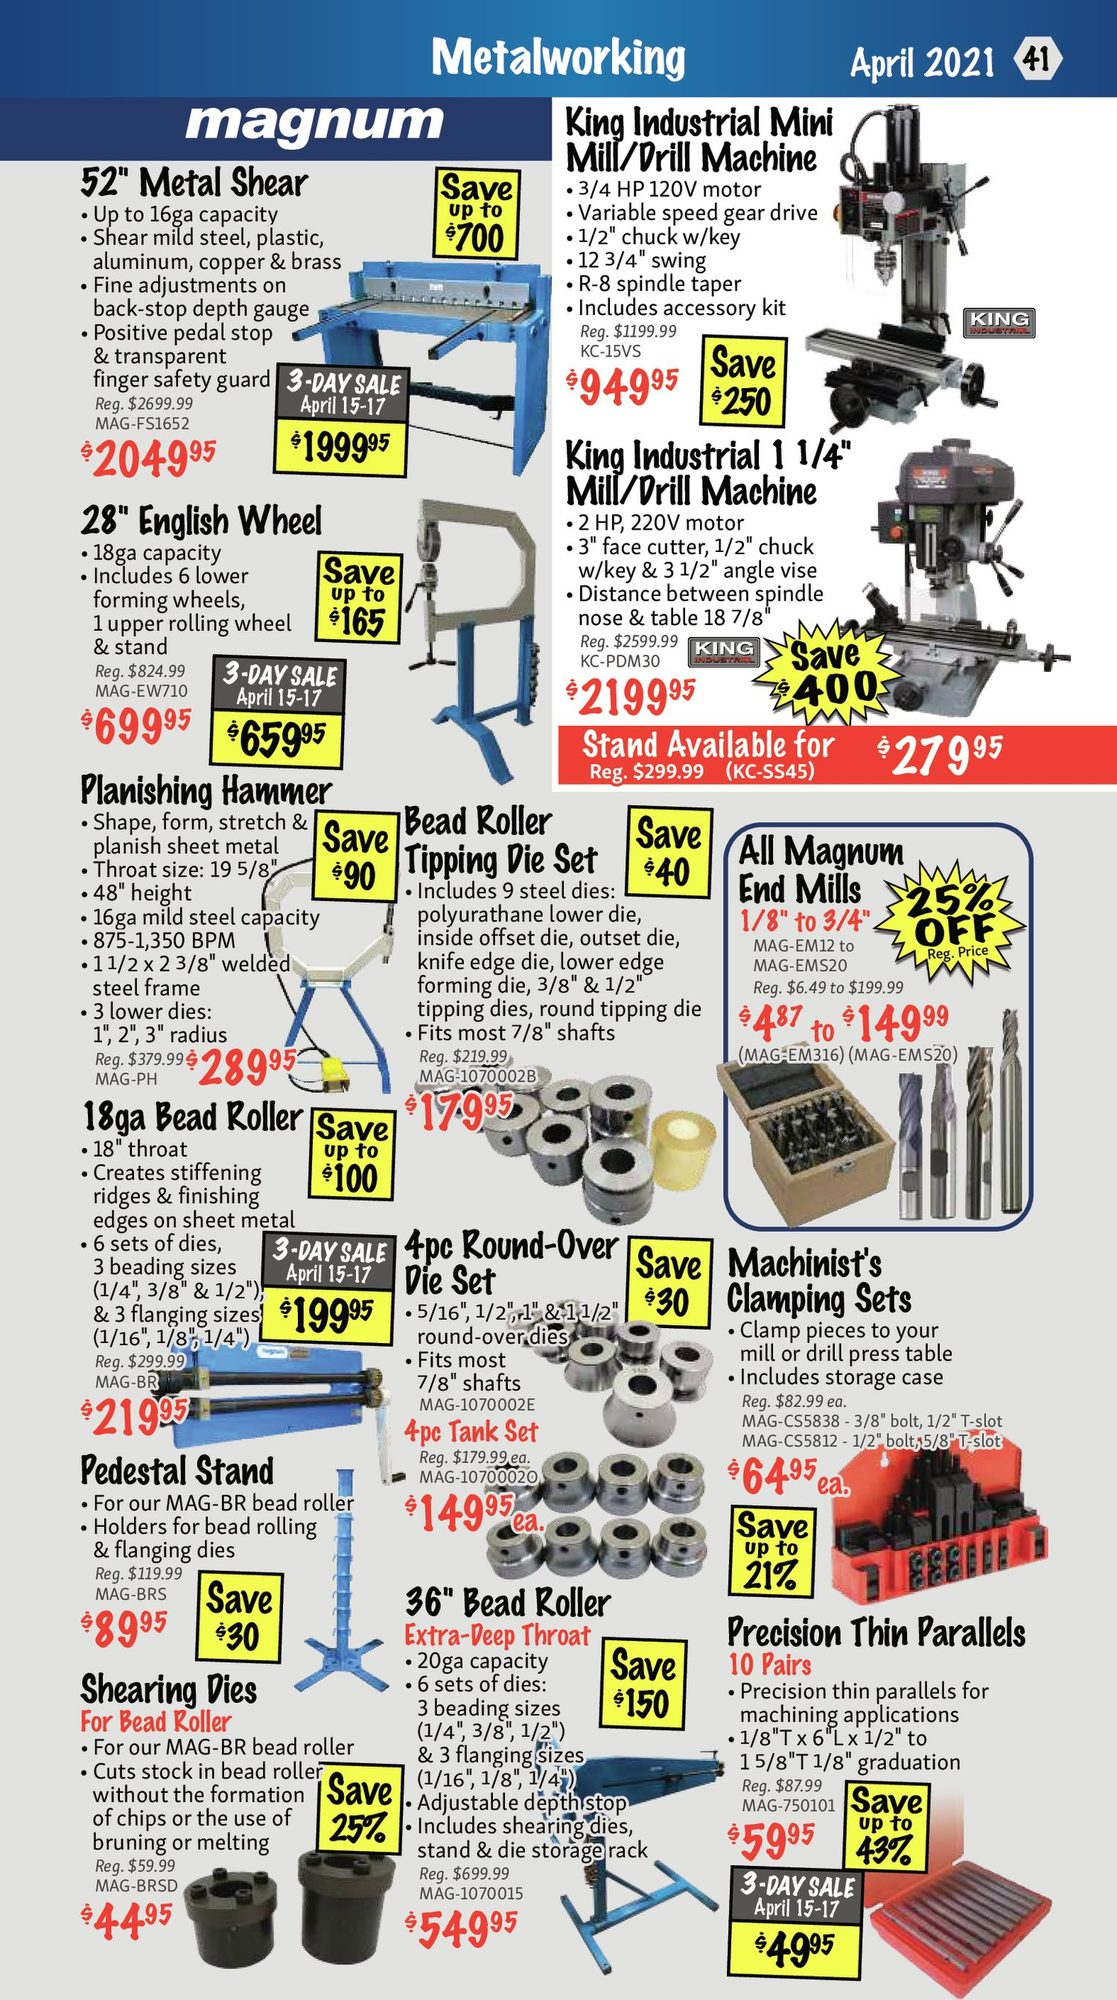 KMS Tools - Hand Tools, Air Tools & Compressor Sale - Page 41